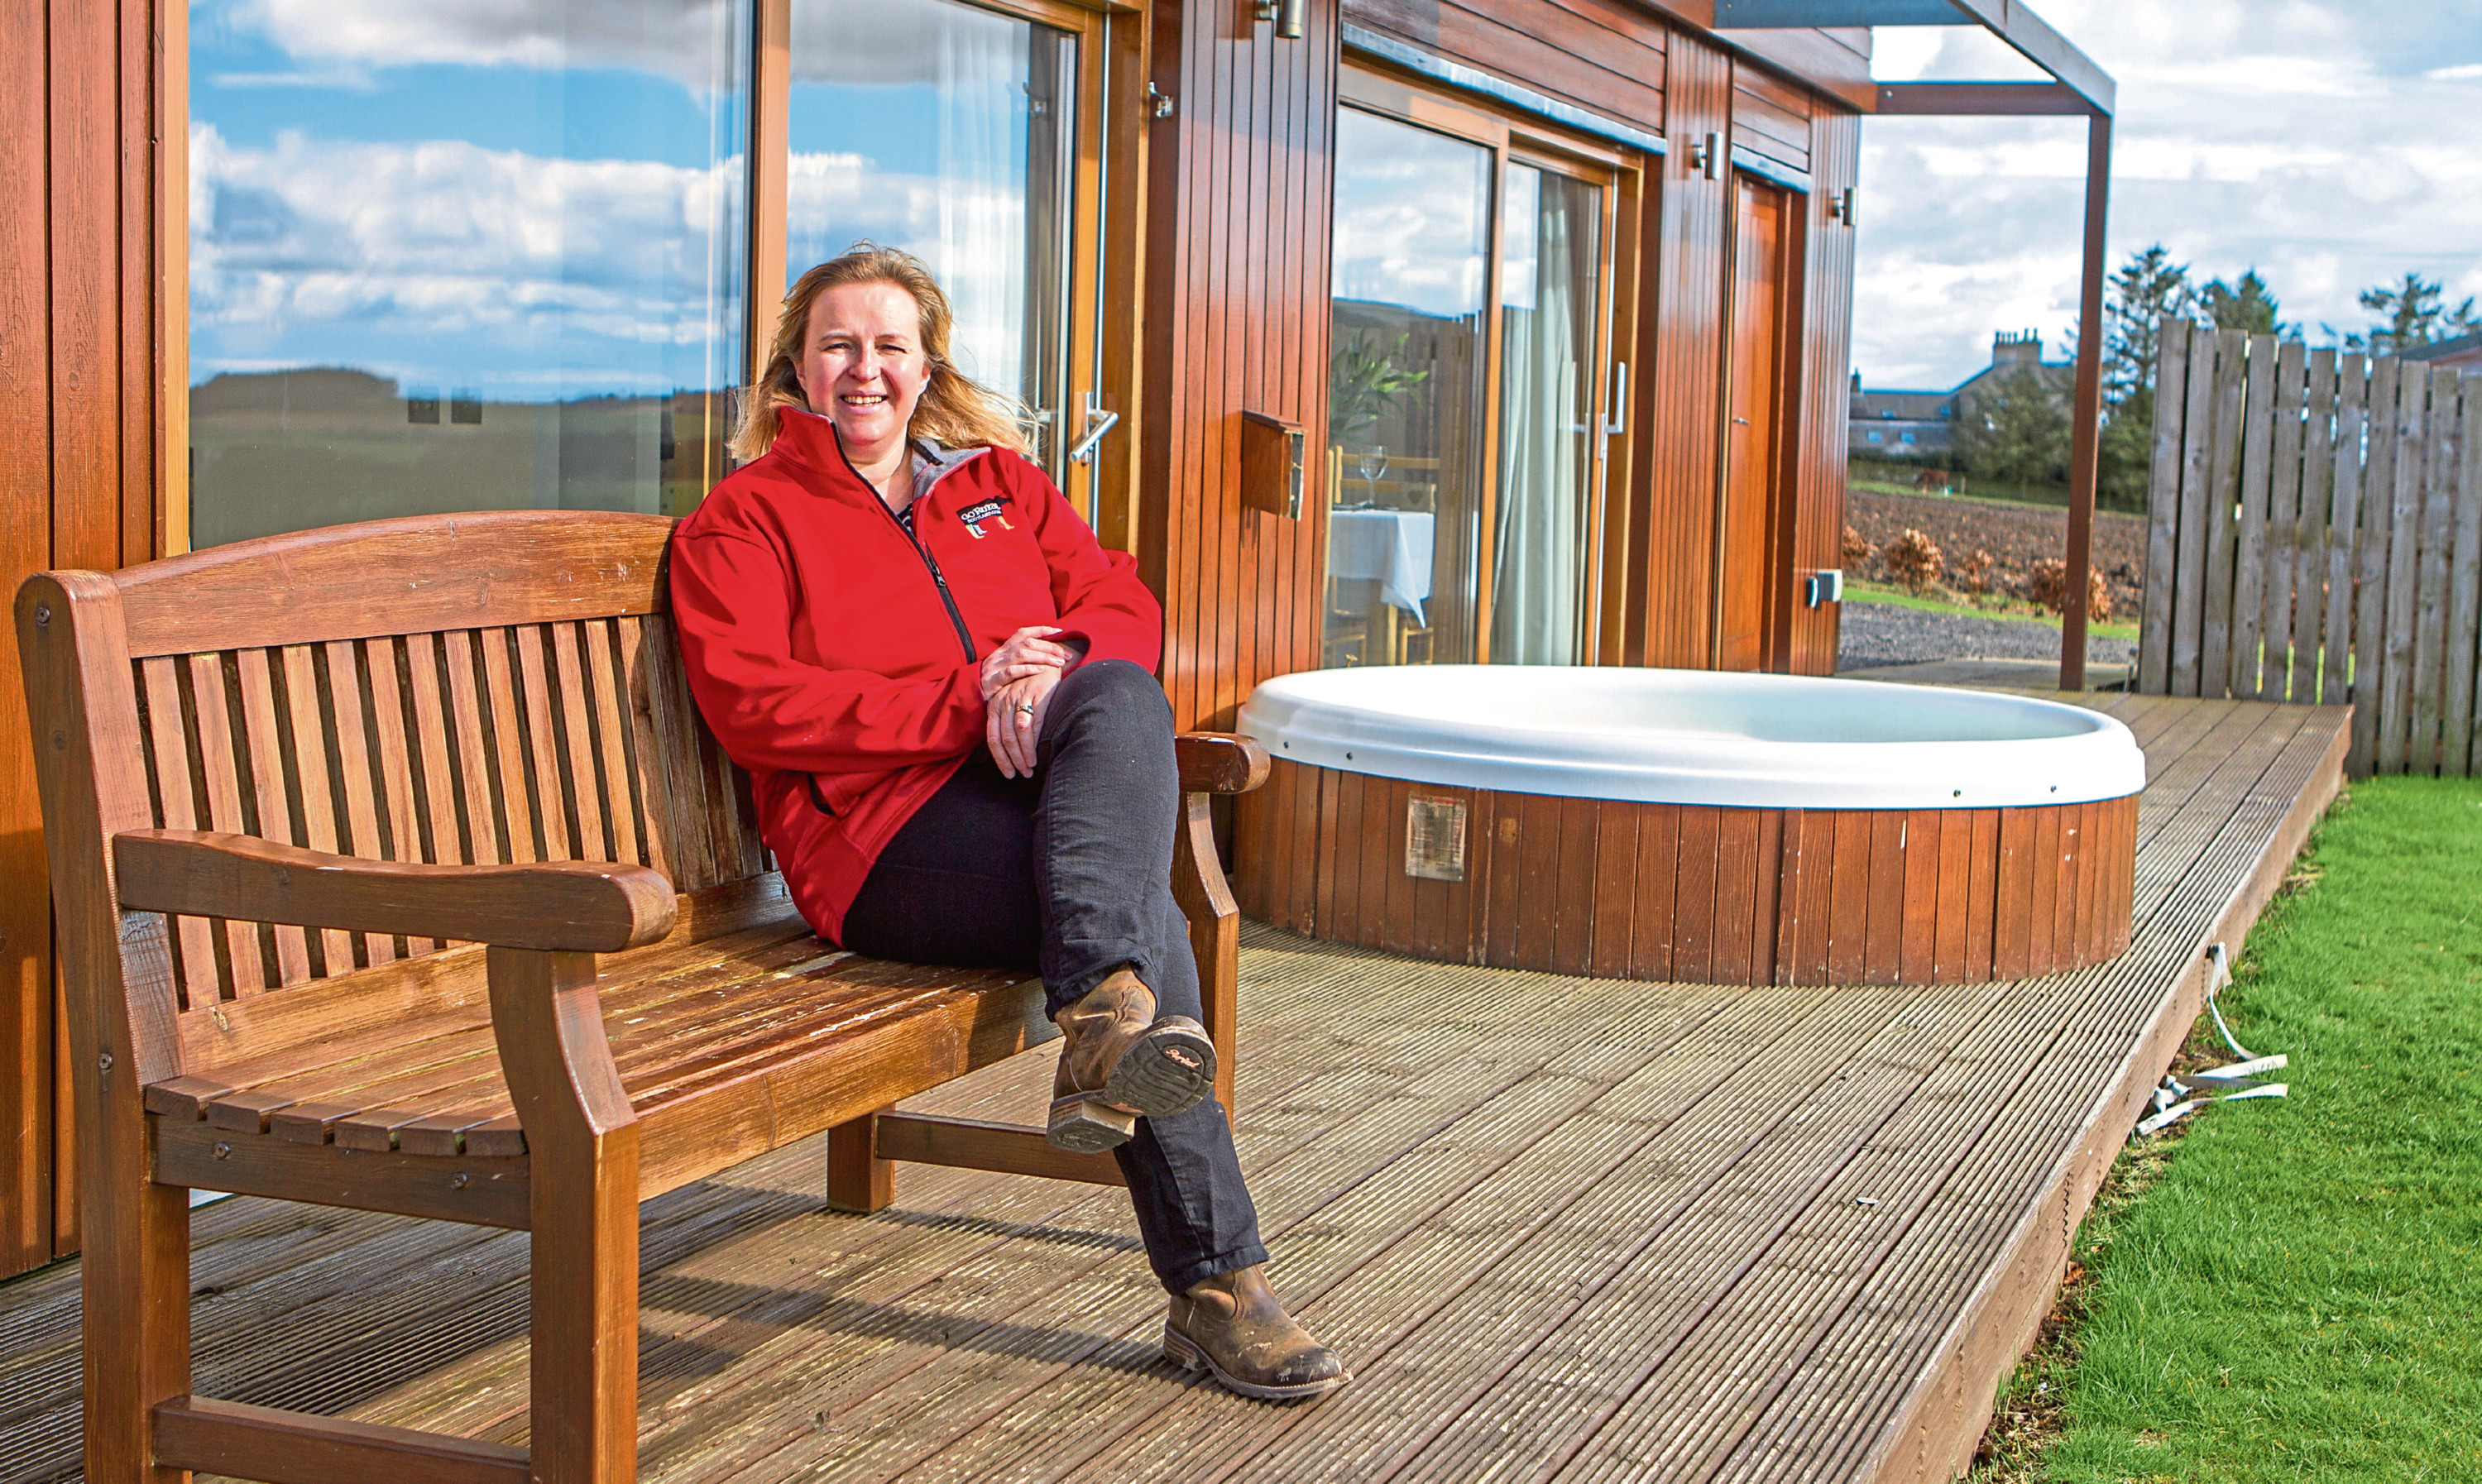 Caroline Milar relaxing at one of The Hideaway Experience luxury lodges she runs.